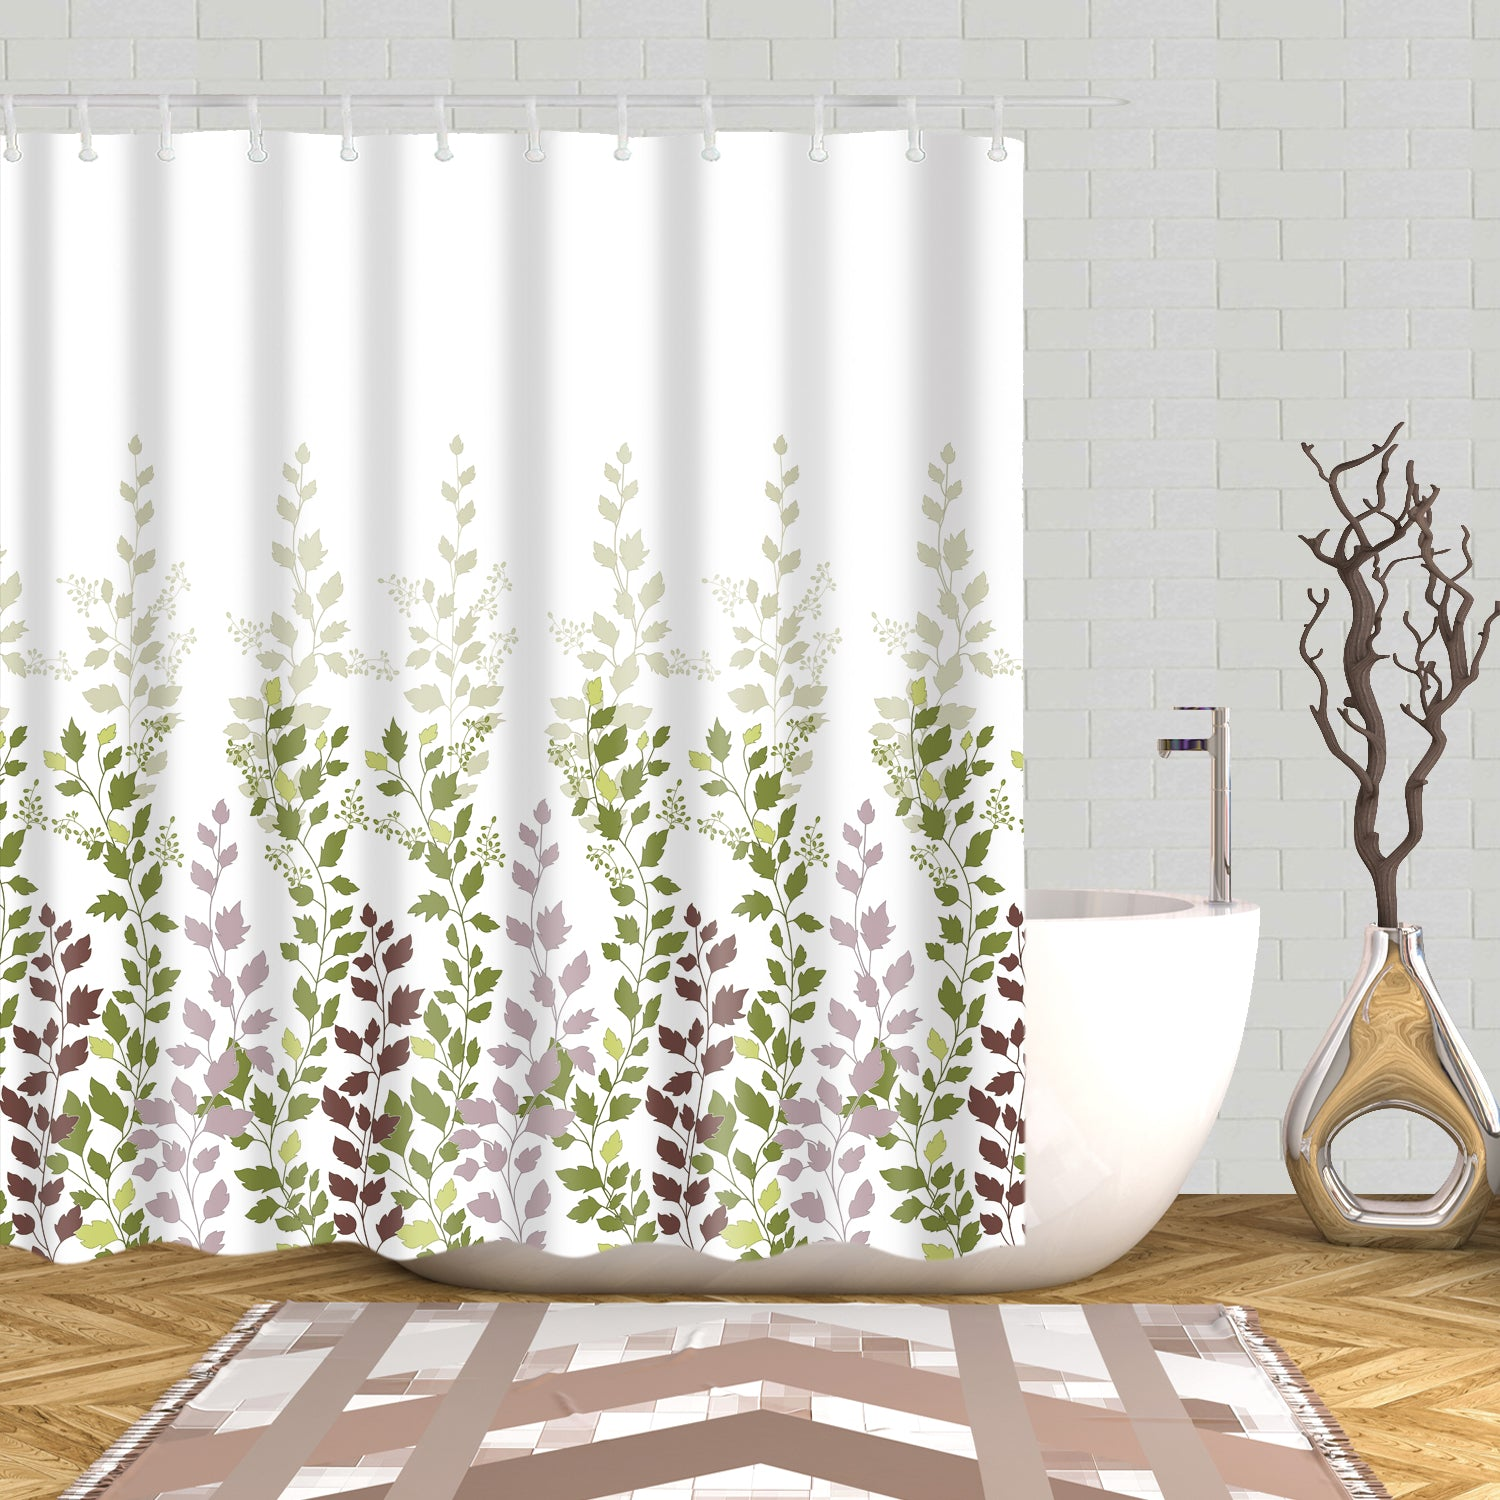 Green and Purple Growing Grass Shower Curtain